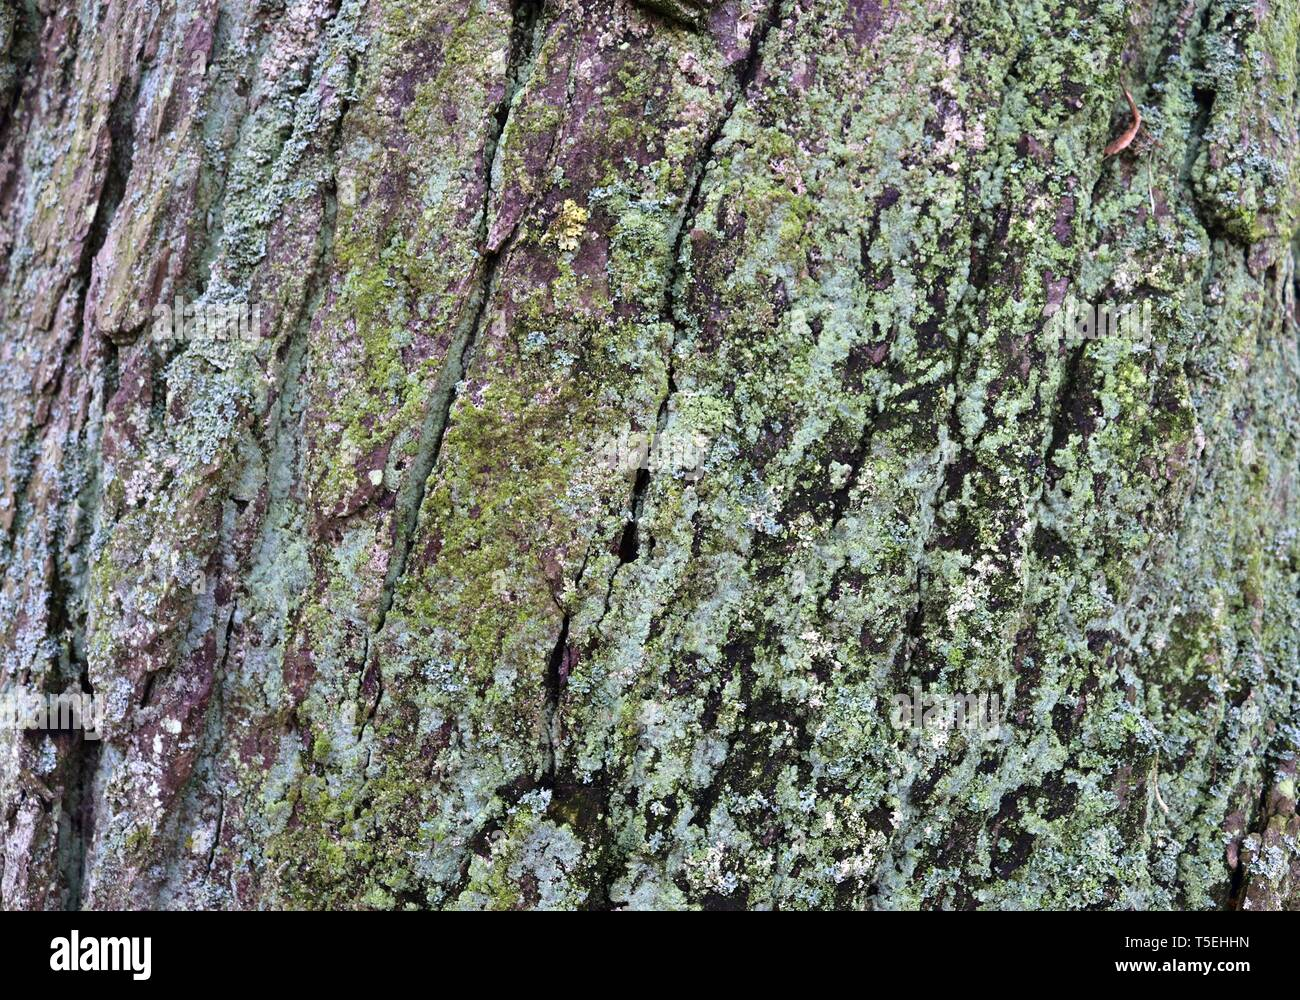 Close up surface of tree bark in a forest in high resolution - Stock Image